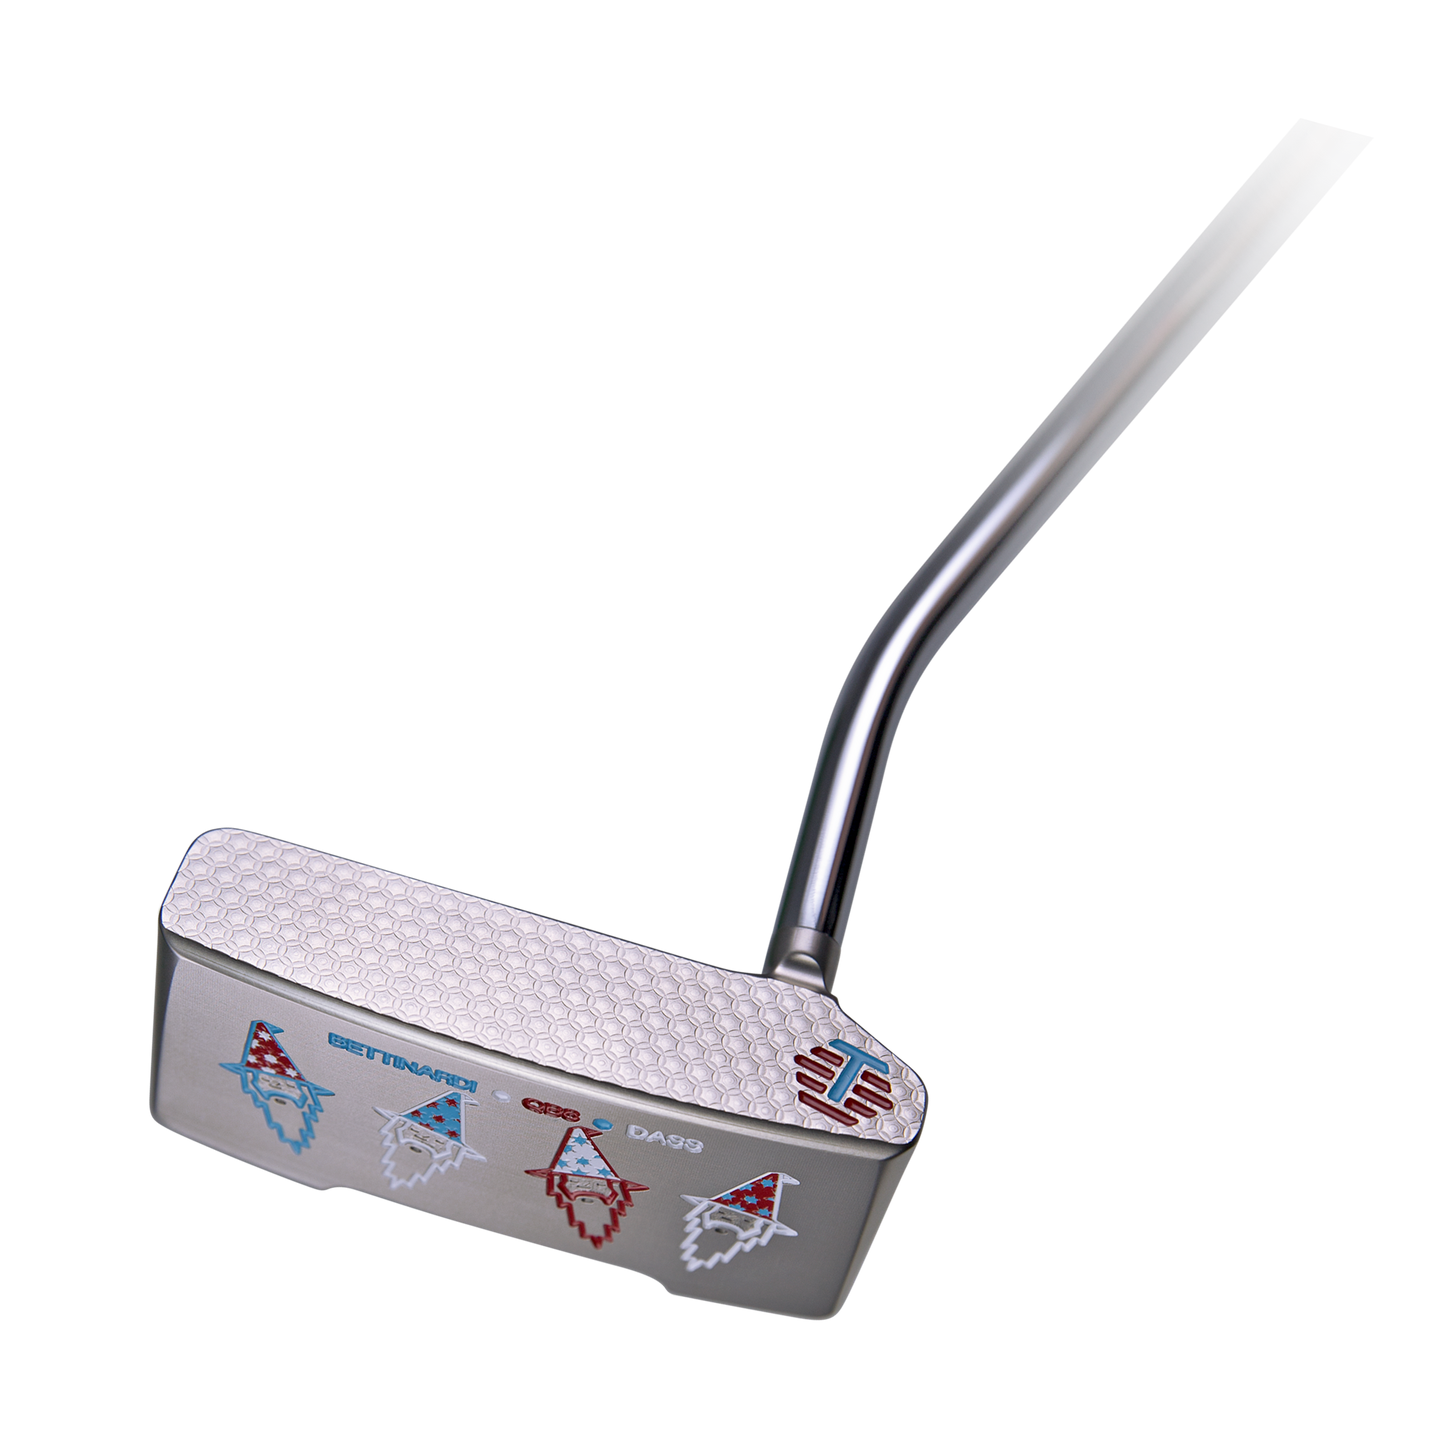 DASS Queen B 8 Windy City Wizard - BettinardiGolf